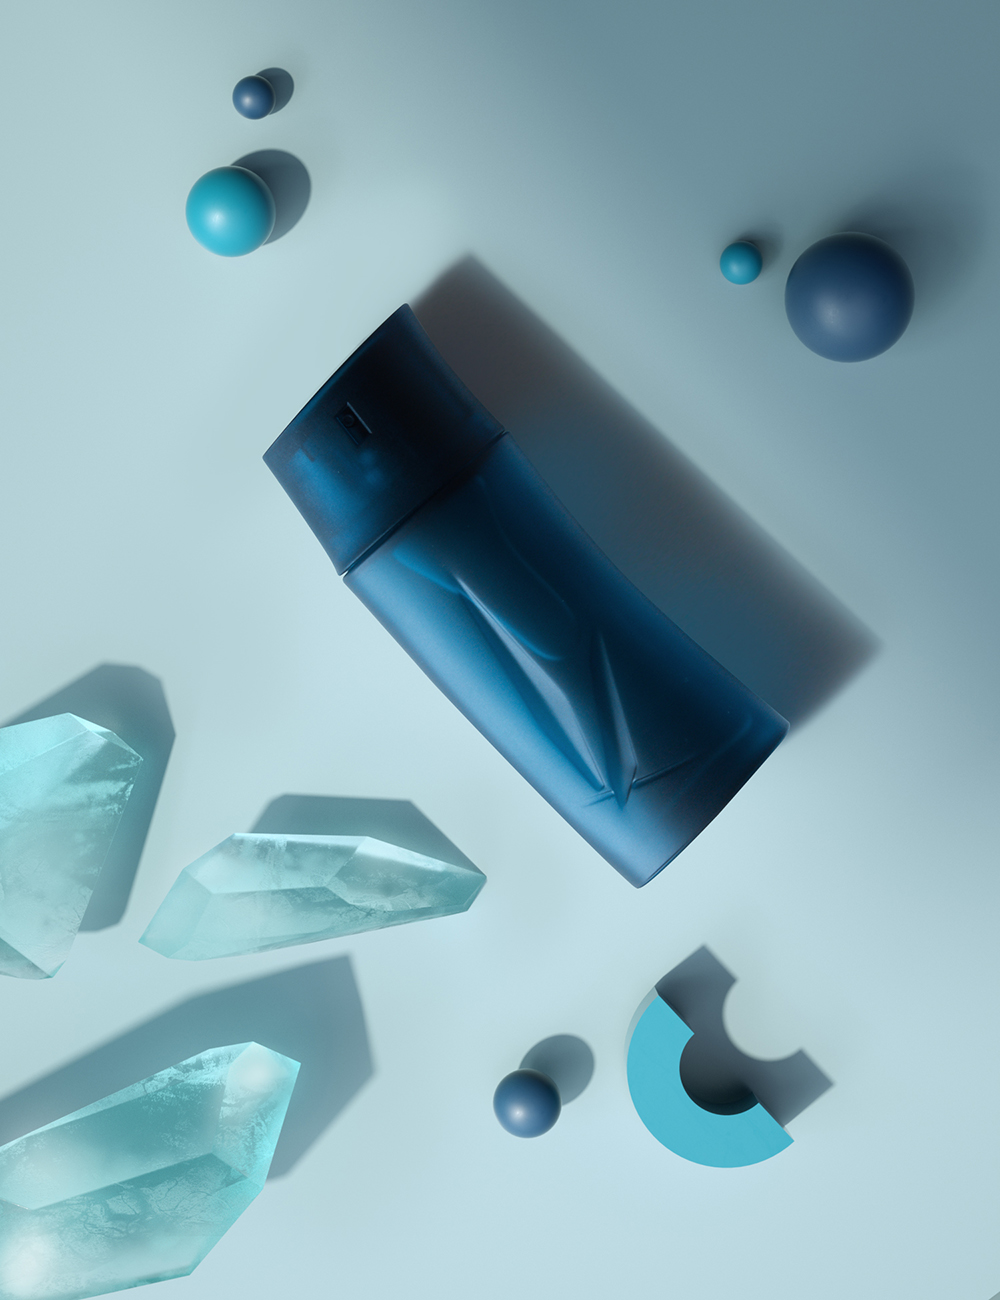 01_Kenzo_Balls And Ice Shapes